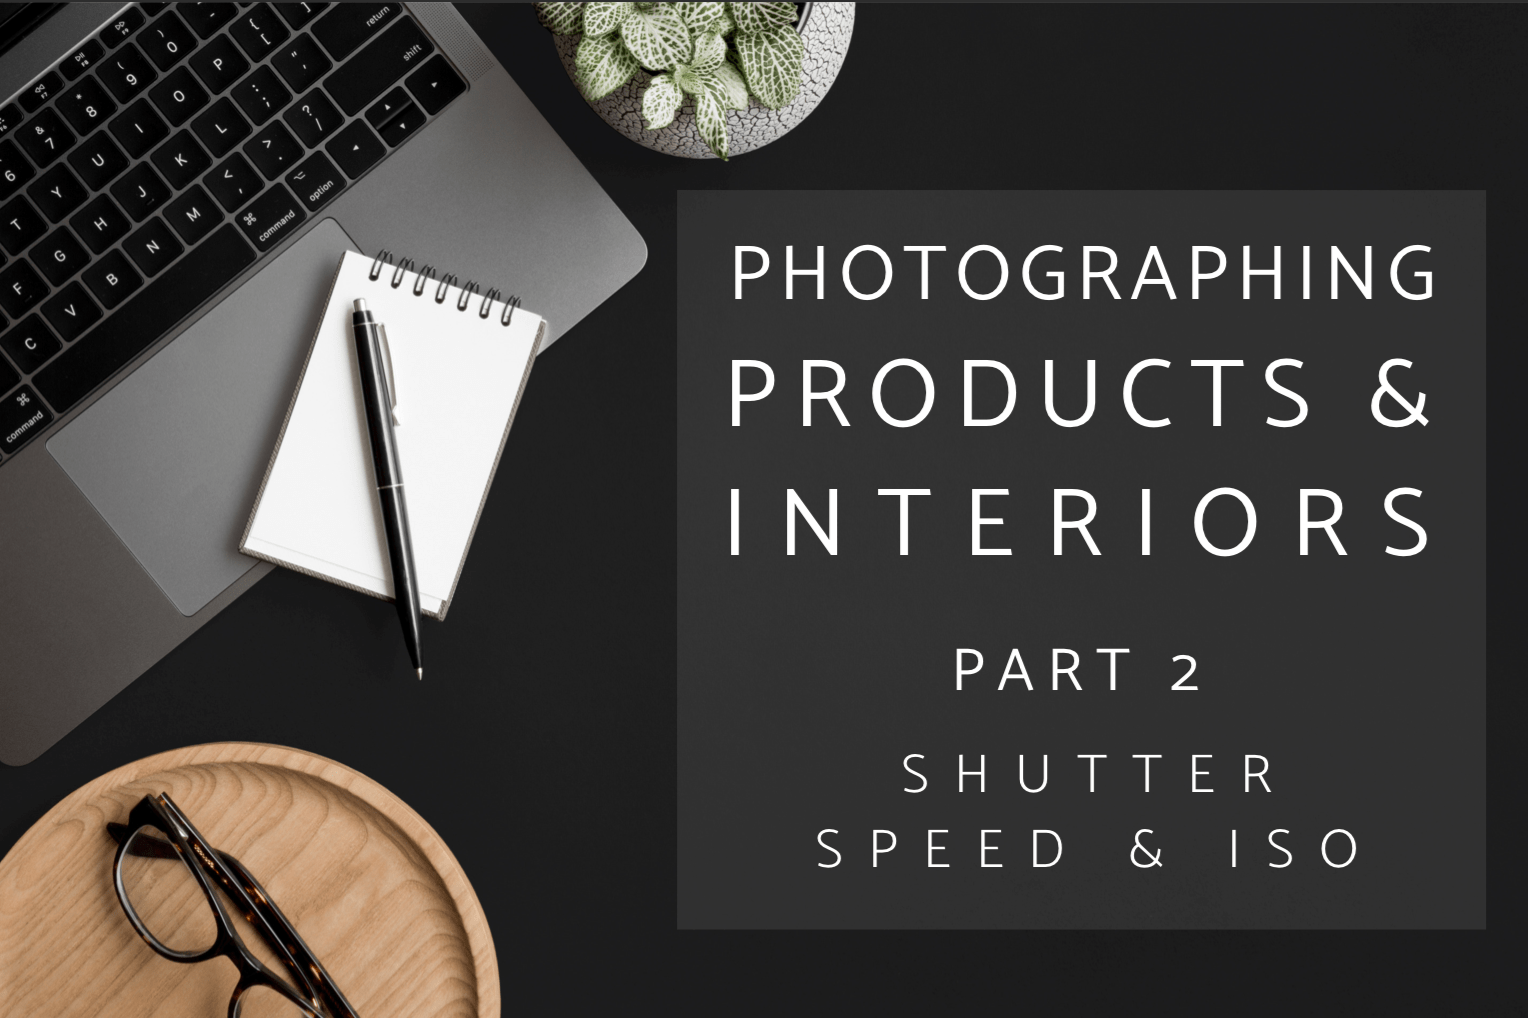 Shutter Speed and ISO Basics for Photographing Interiors and Products